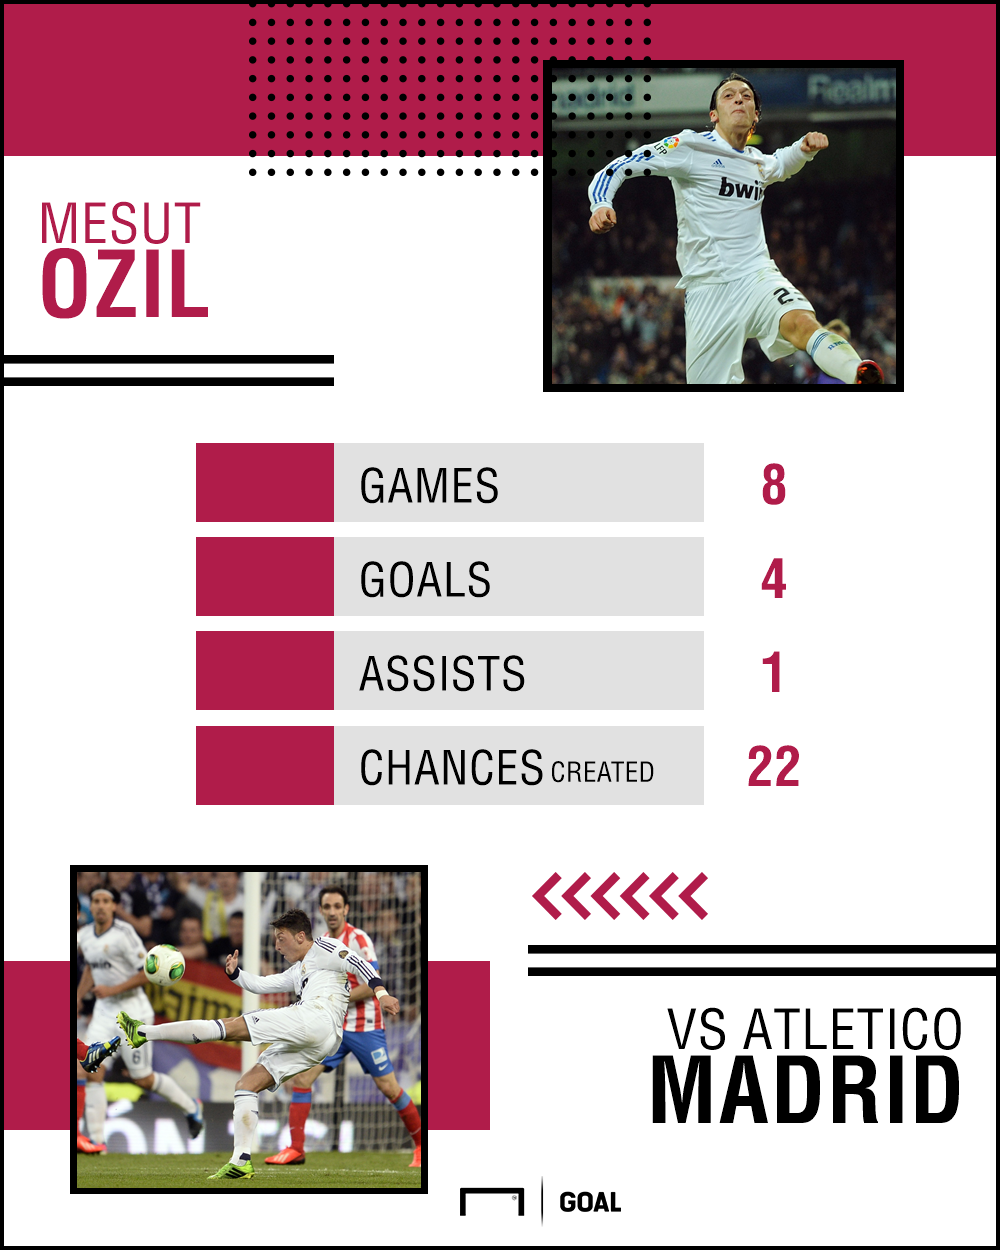 Mesut Ozil vs Atletico Madrid